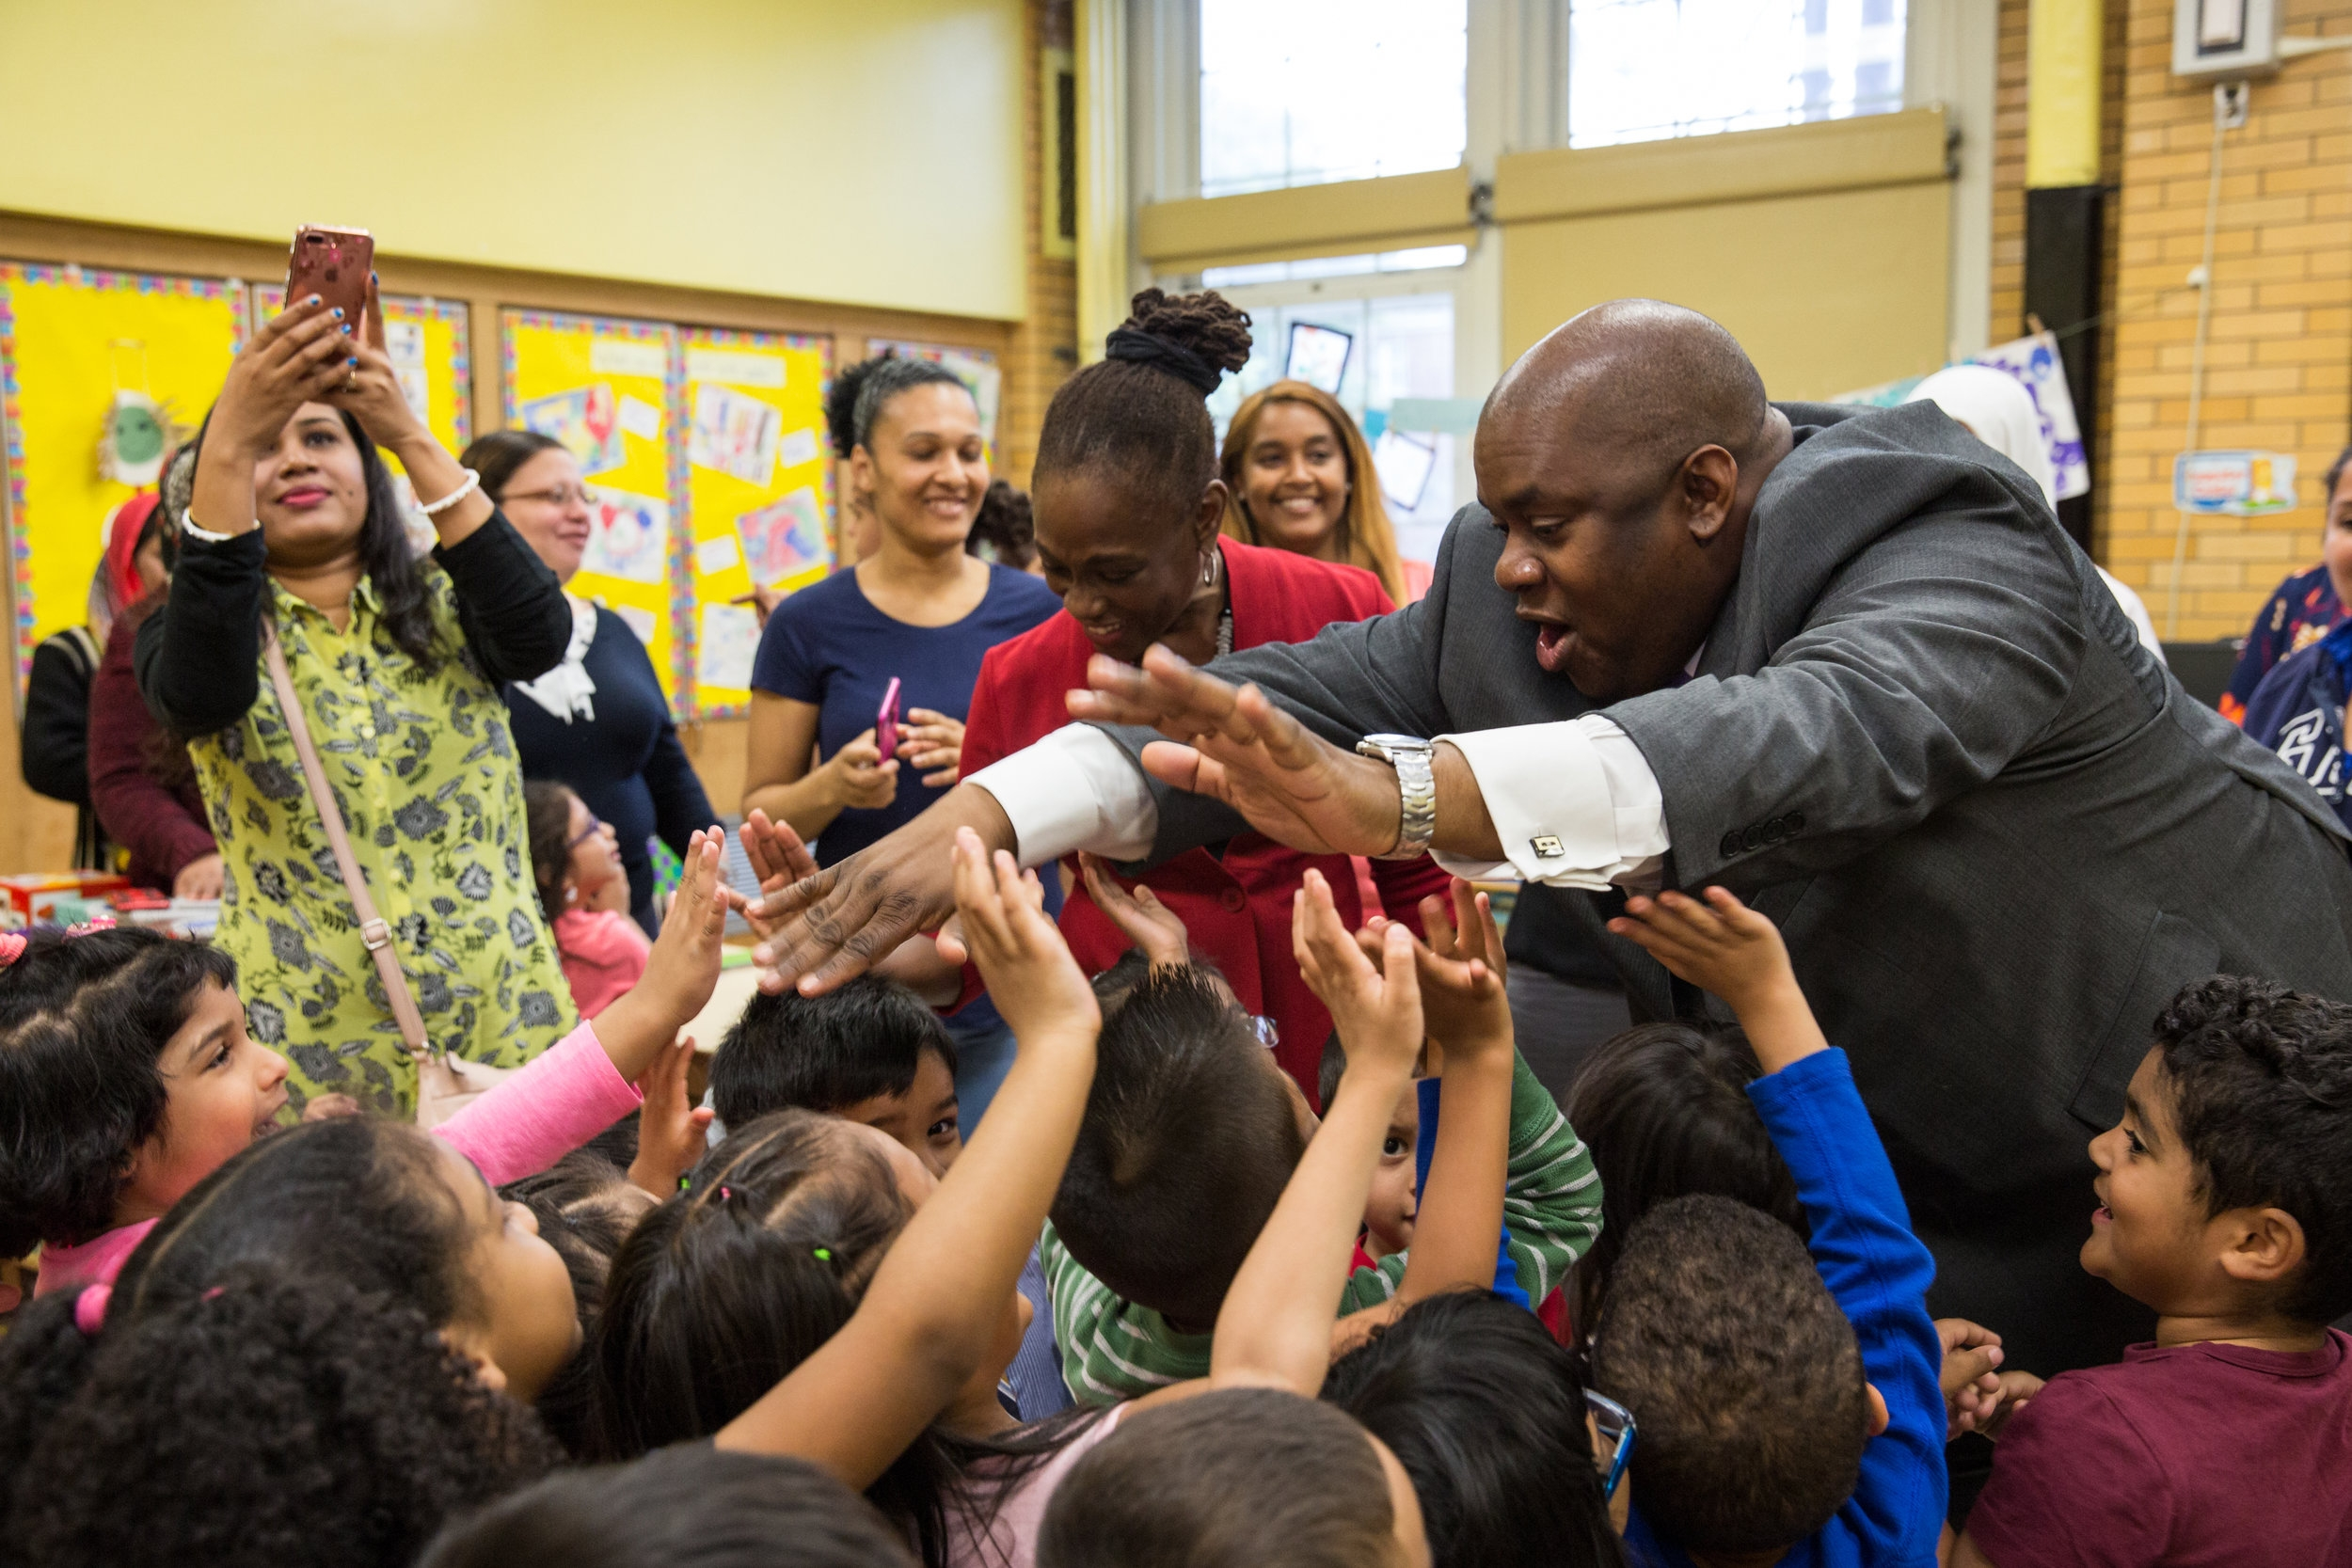 """New York City First Lady Chirlane McCray and Deputy Mayor Richard Buery high-five a Pre-K class at P.S. 119 in the Bronx on May 25, 2017. The First Lady and Deputy Mayor visited the class to play """"Fun with Feelings,"""" a card game that teaches emotional intelligence.( For   New York City Mayor's Office)"""